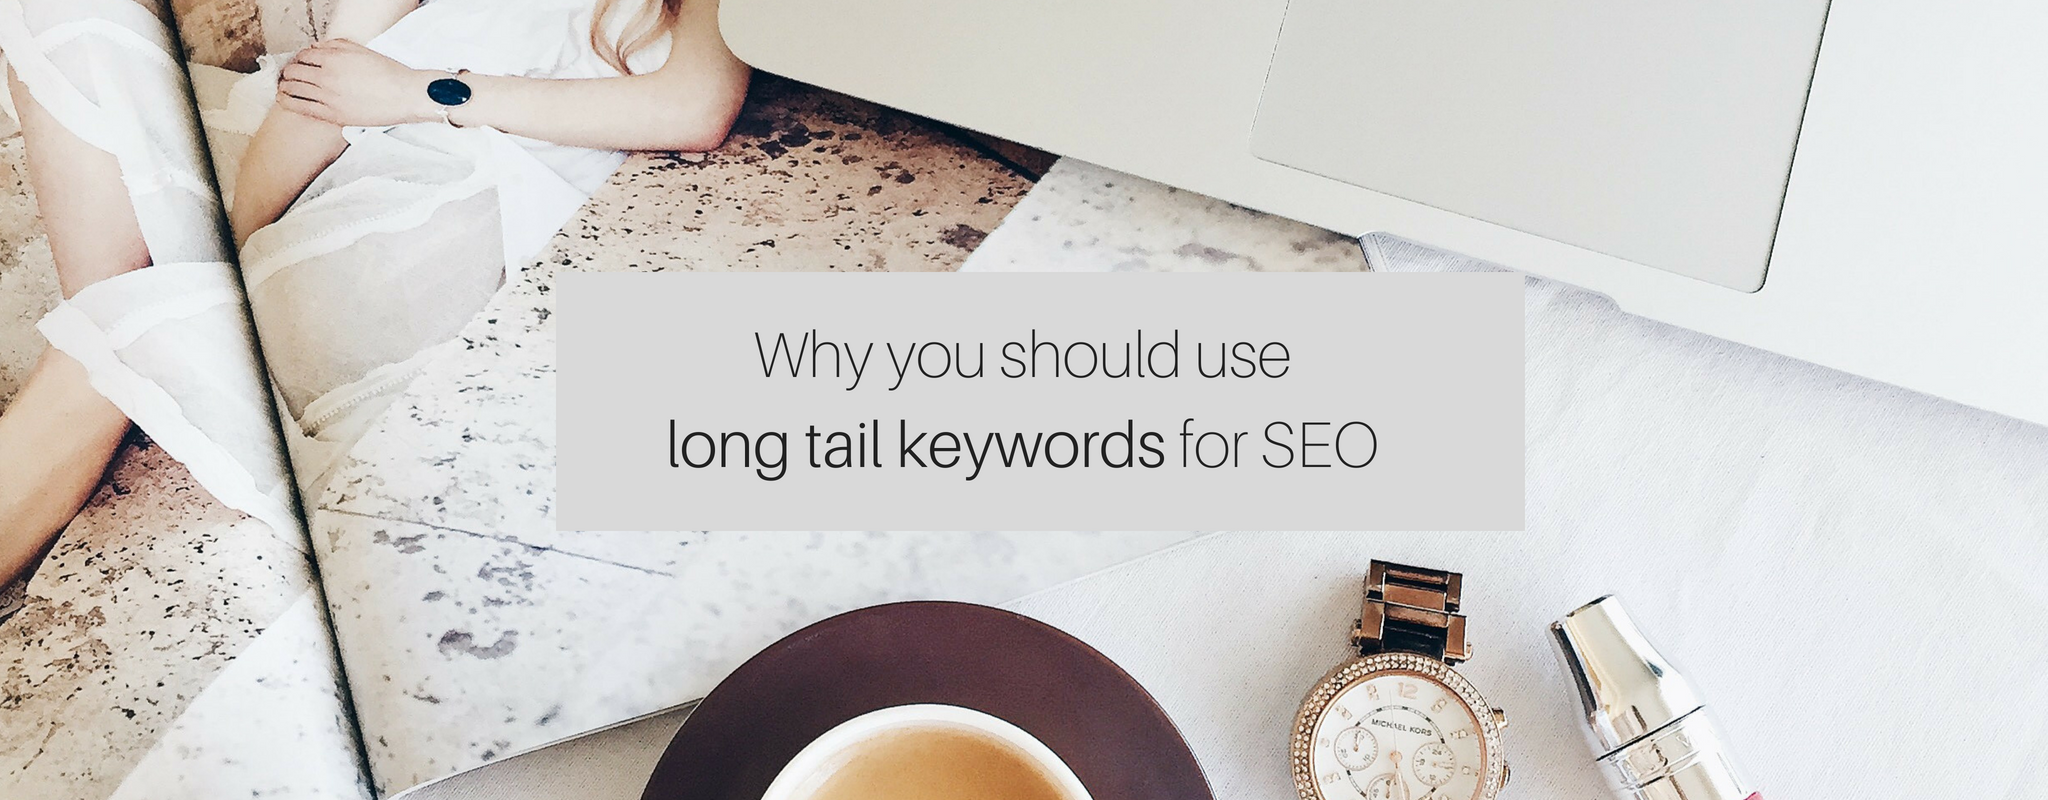 Why you should use long tail keywords for SEO